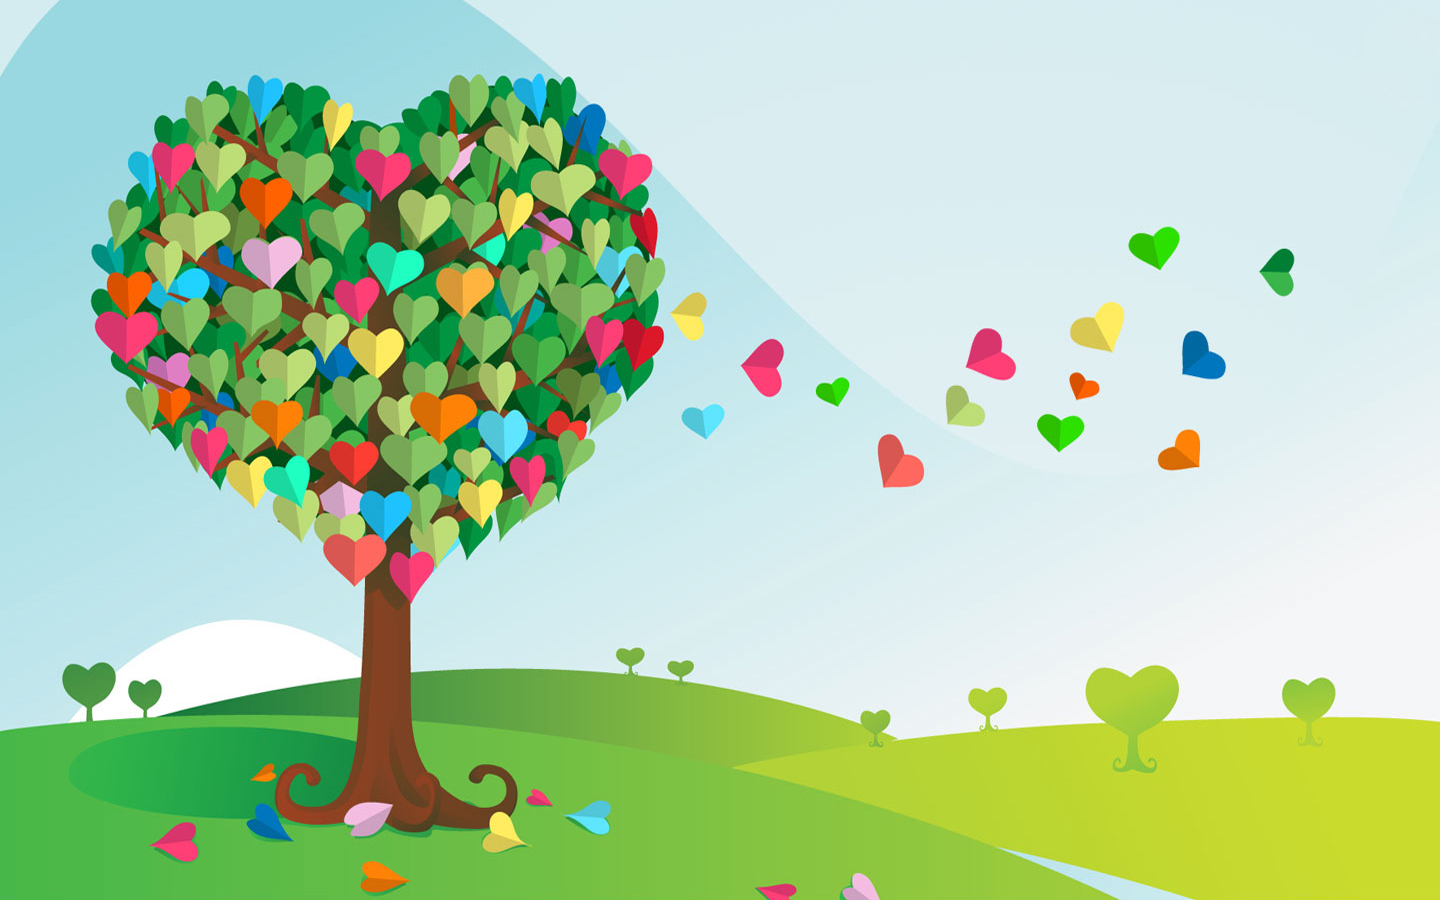 Beautiful Love Hd Wallpapers Free Download In 1080p